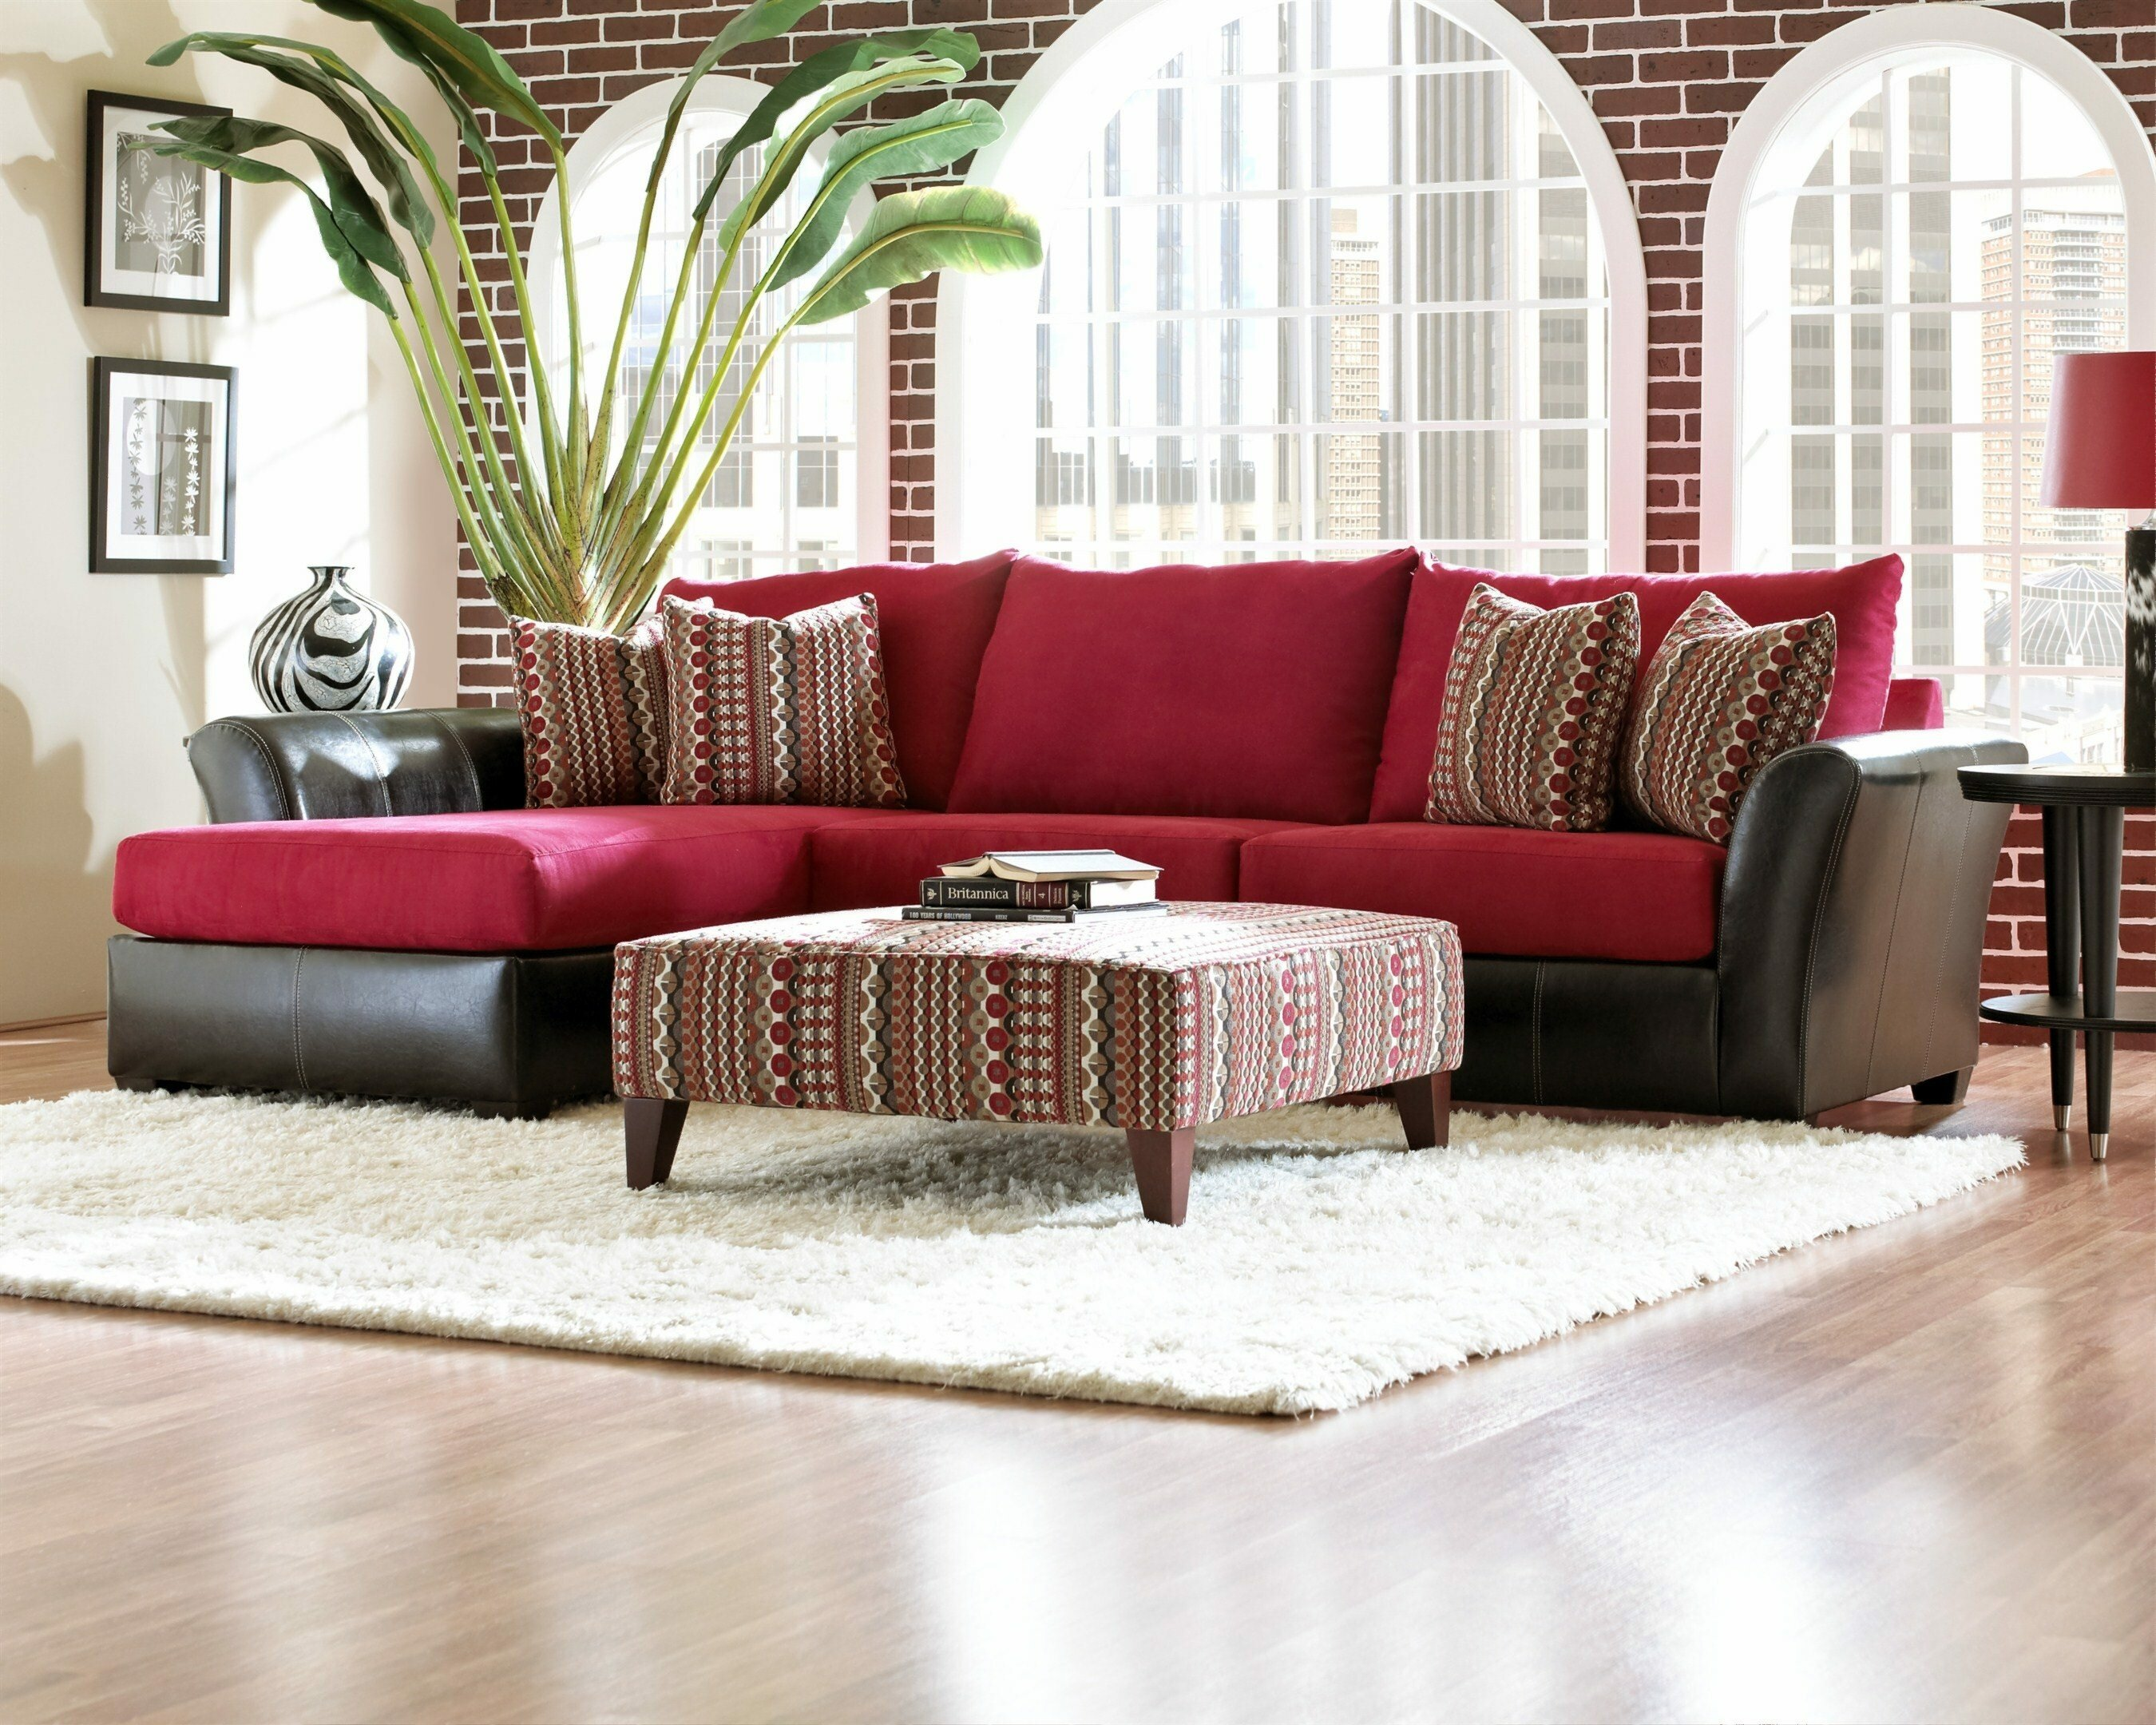 Red Sectional Sofa | Sofa Chaise Lounge Sectional | Colored Sectionals